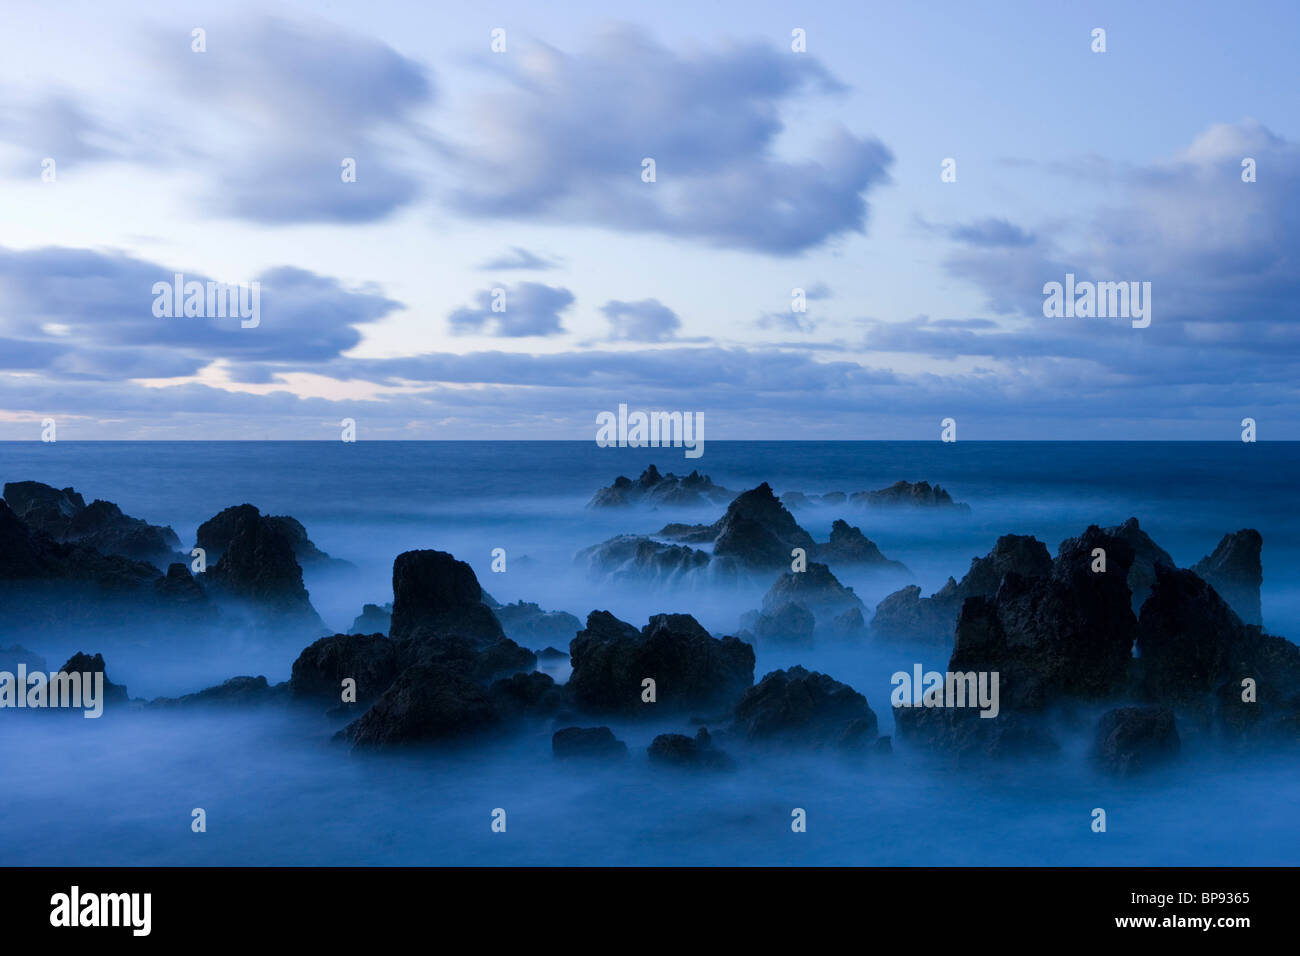 Lava rocks at dusk surrounded by sea water, Porto Moniz, Madeira, Portugal - Stock Image